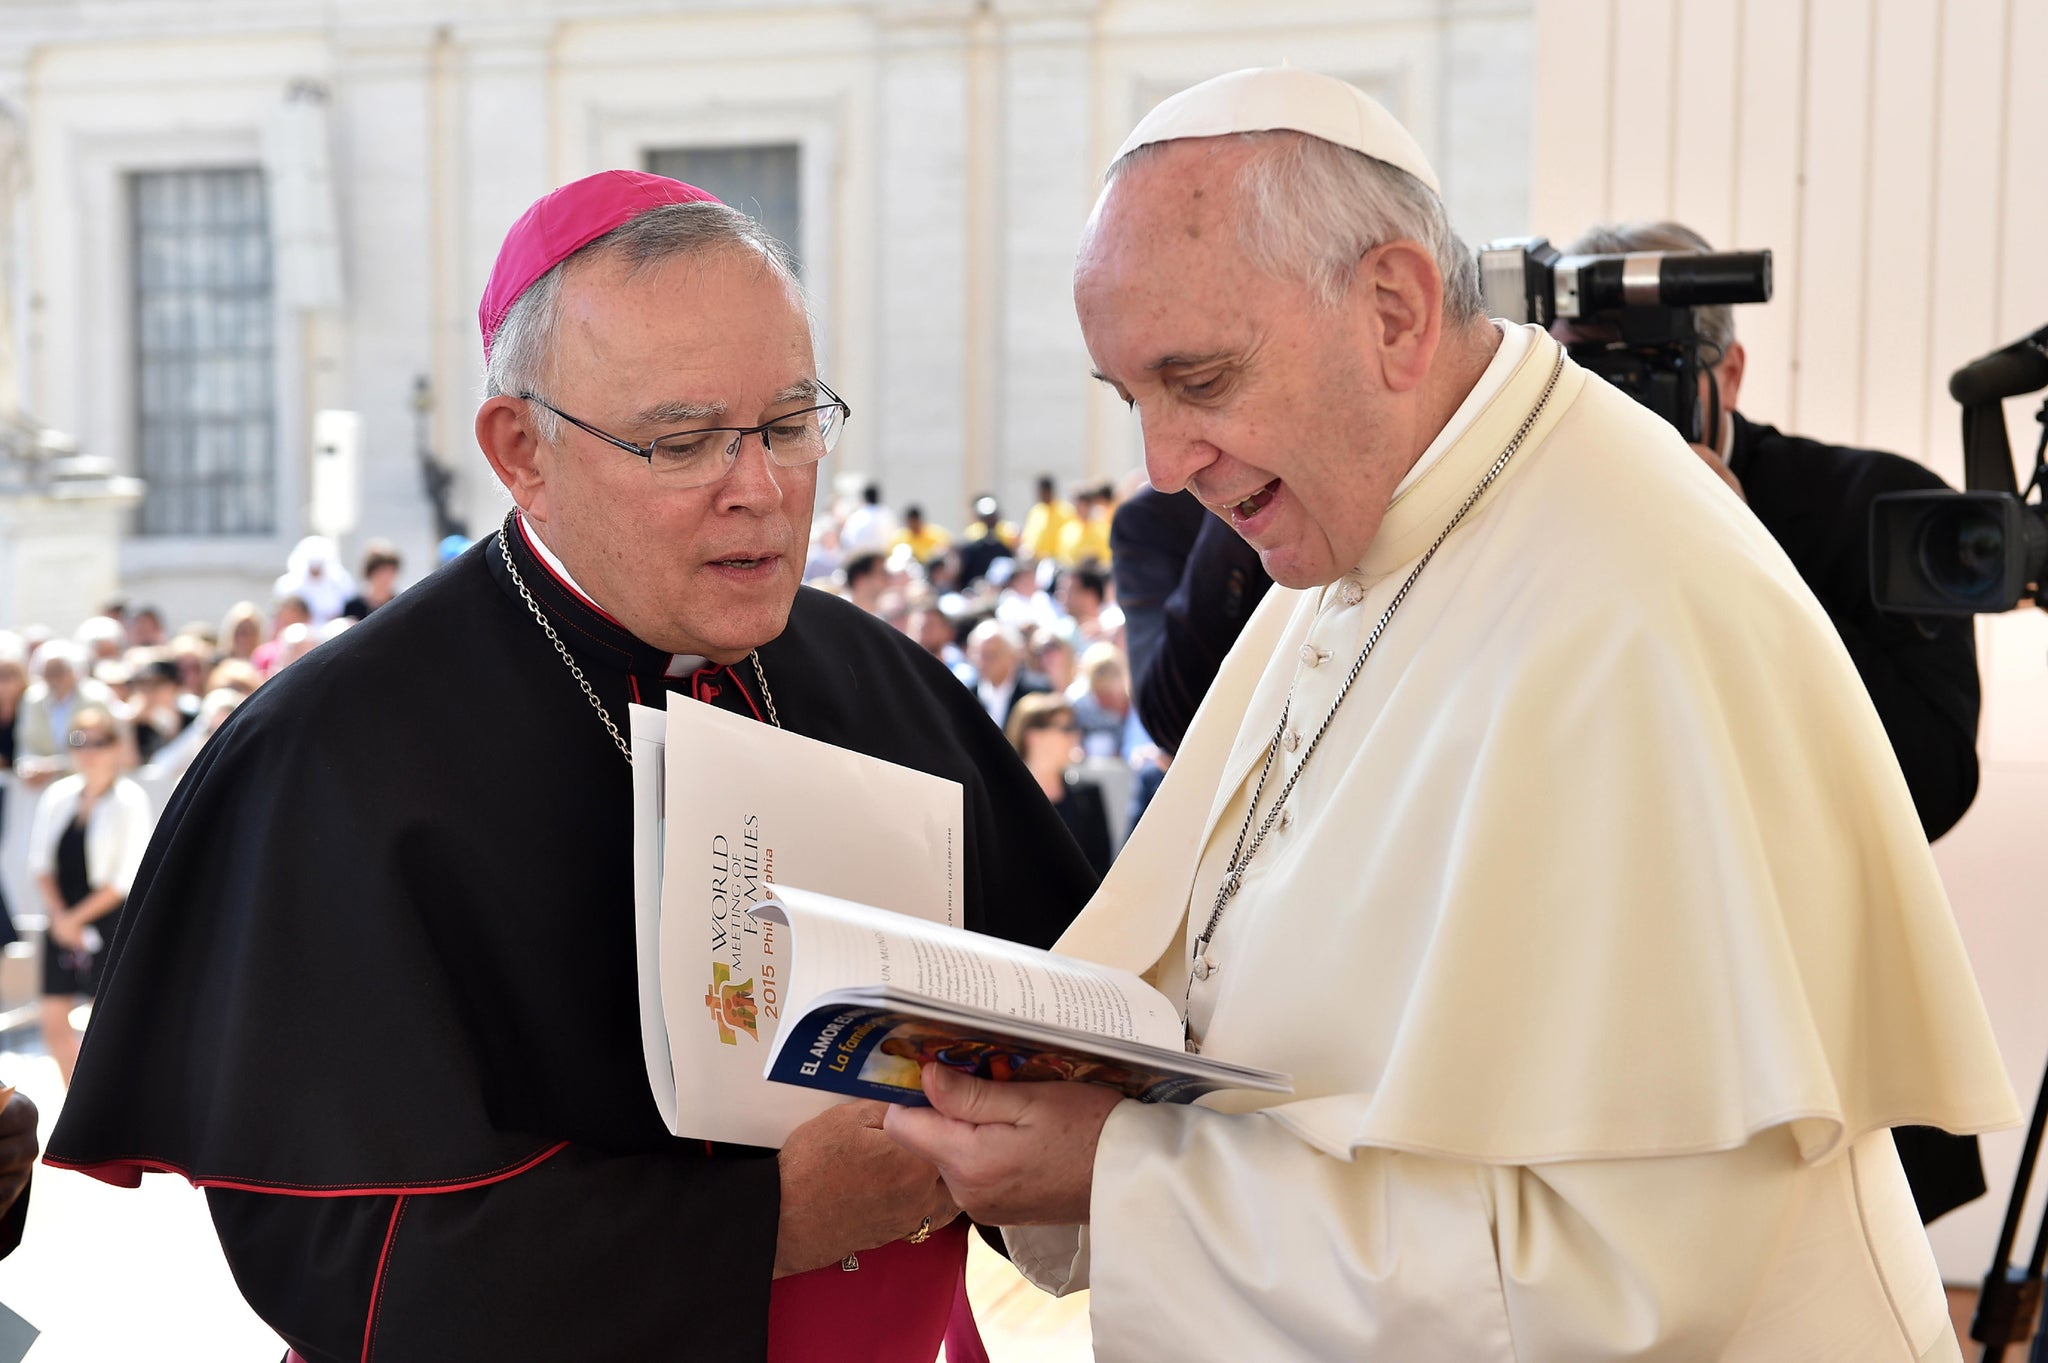 Pope Francis and Archbishop Chaput at an audience in Saint Peter's Square. -- L'Osservatore Romano Photographic Service